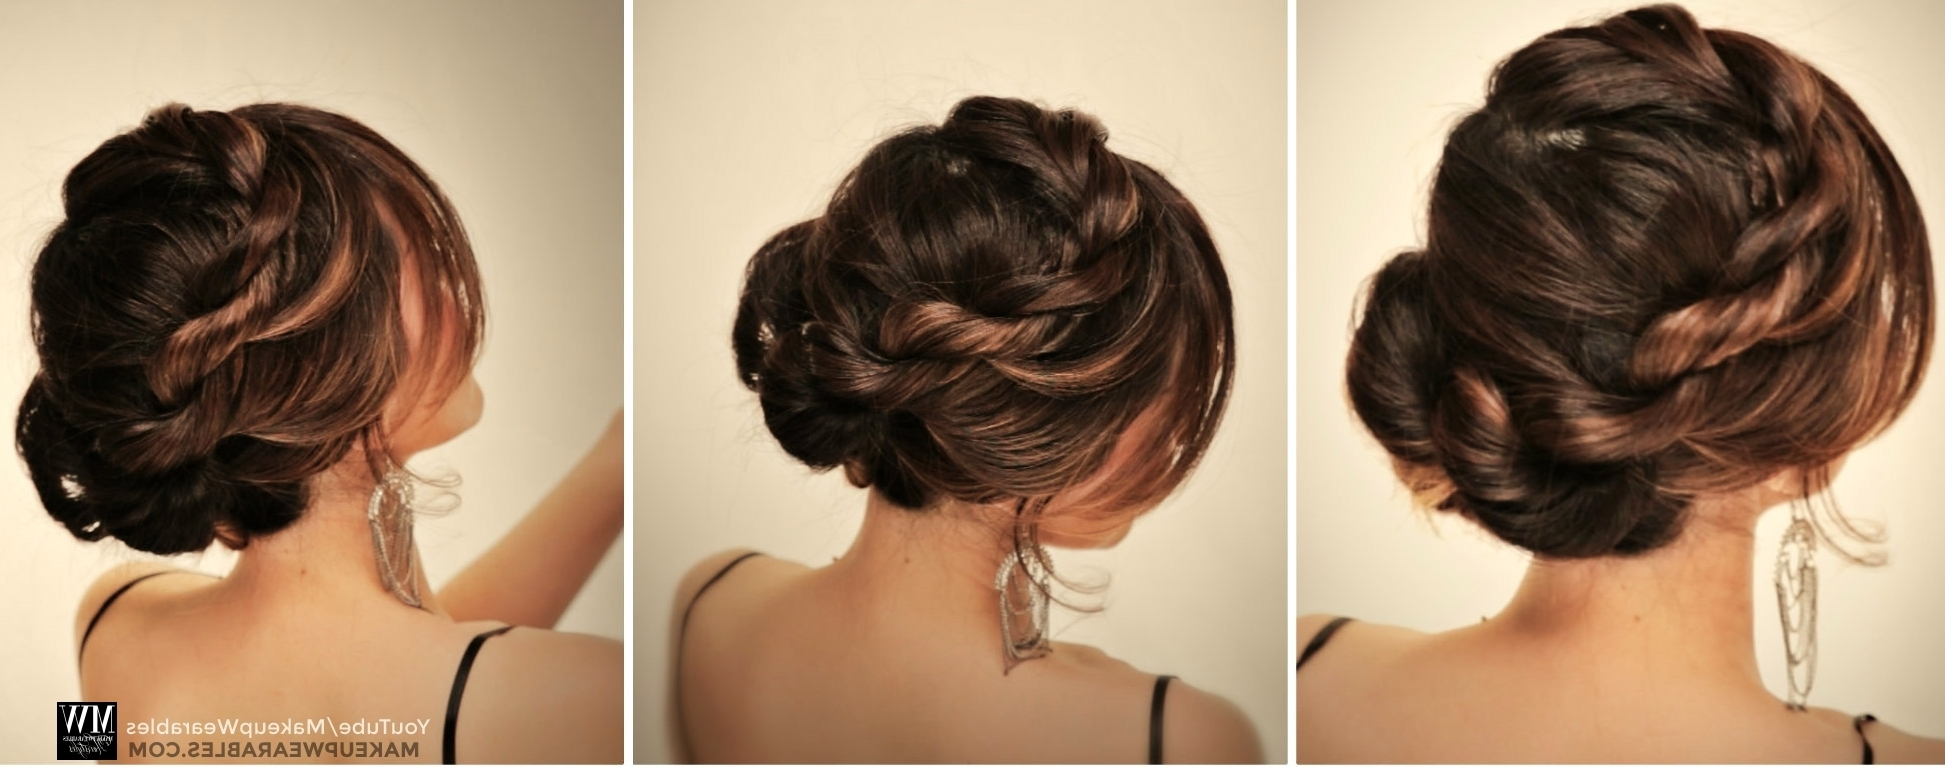 How To: 5 Amazingly Cute + Easy Hairstyles With A Simple Twist Within Long Hair Easy Updo Hairstyles (View 12 of 15)